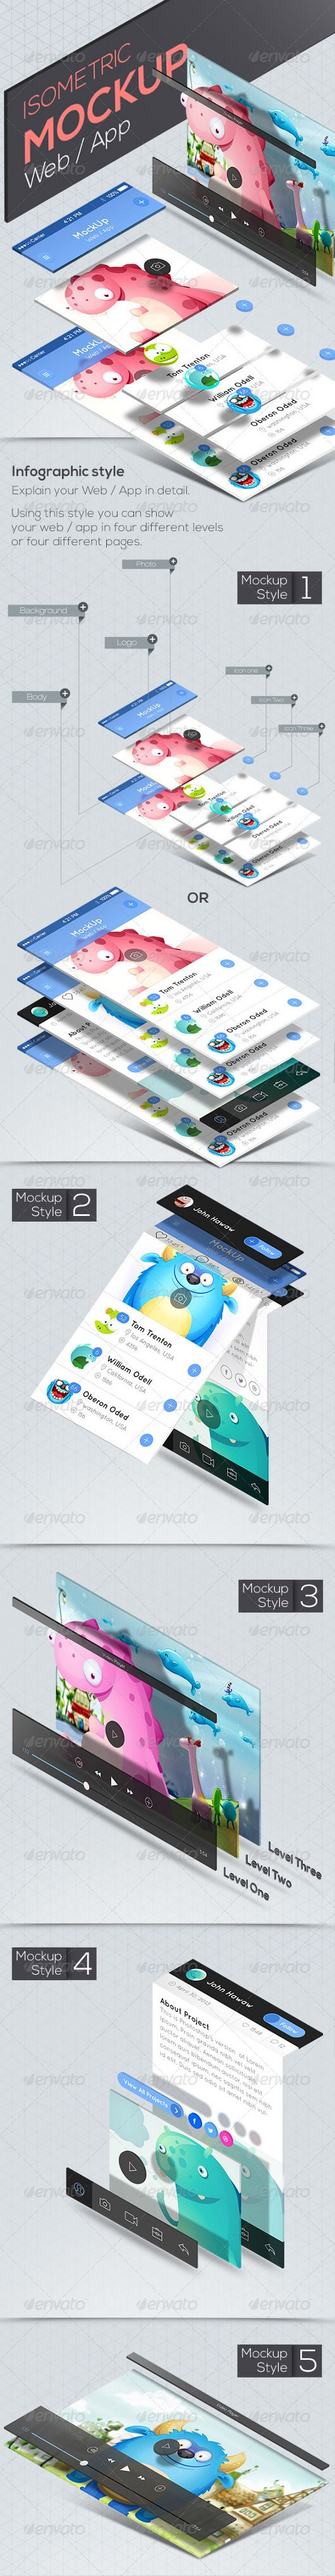 How To Create Your Isometric Mockup In Photoshop Omahpsd Mockup Photoshop Isometric Mockup Design